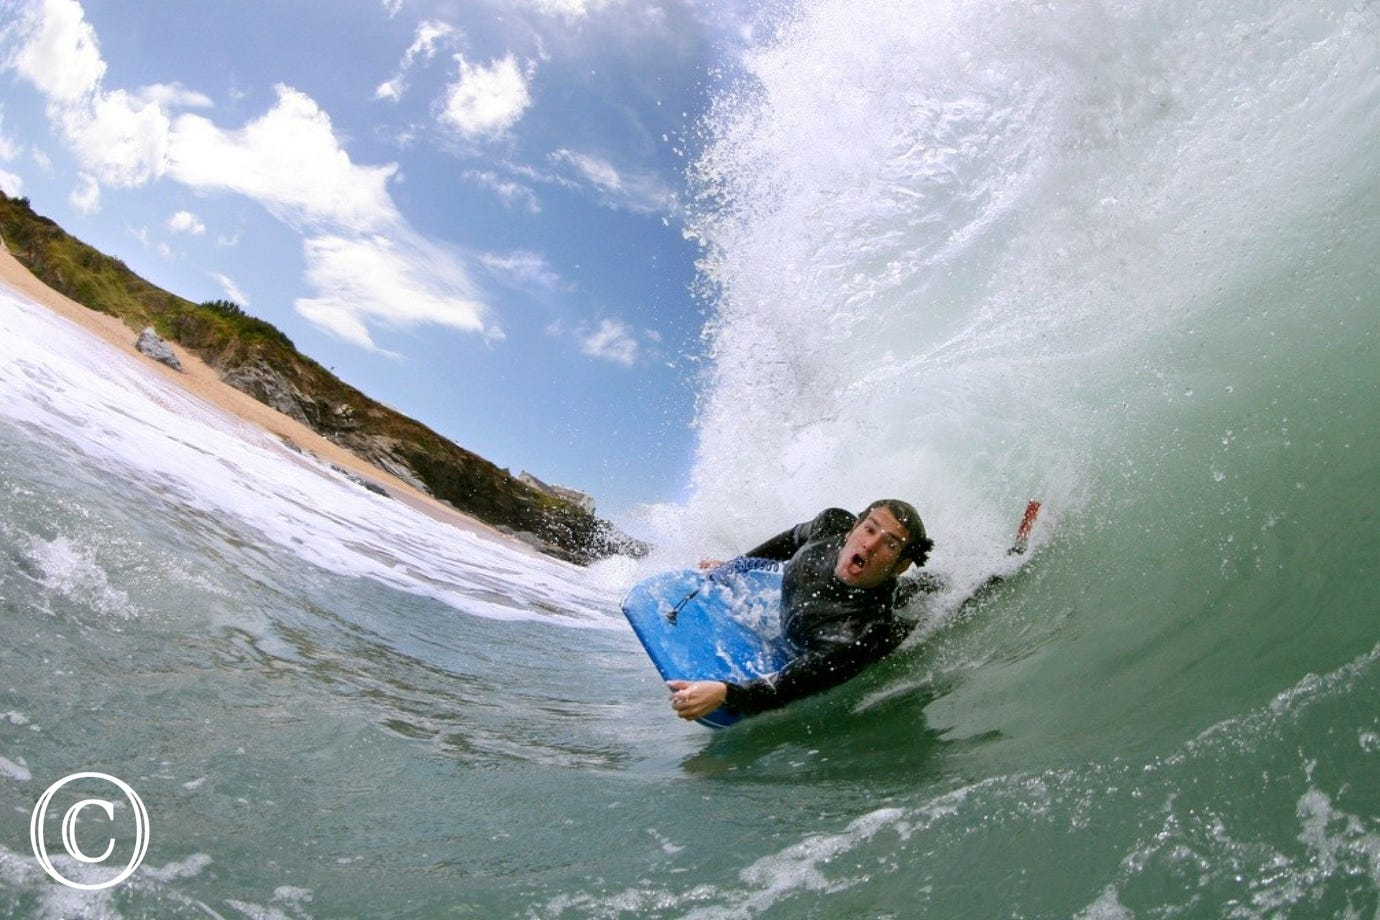 Have a go at surfing or other water-sports from various beaches all within a short drive